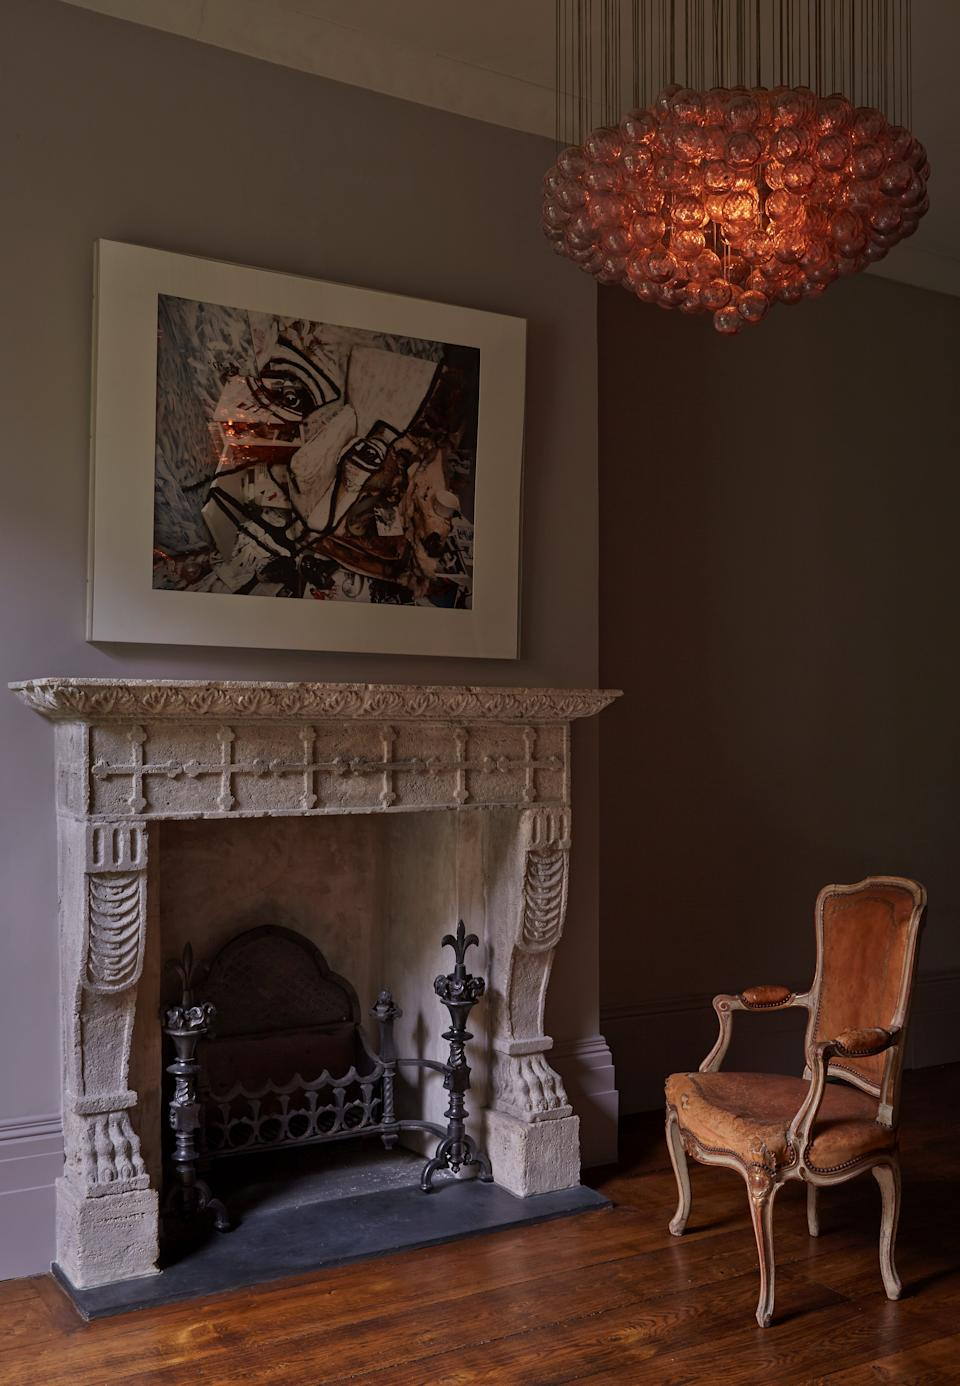 Who wouldn't want to curl up with a book in front of this fireplace?Renaissance London